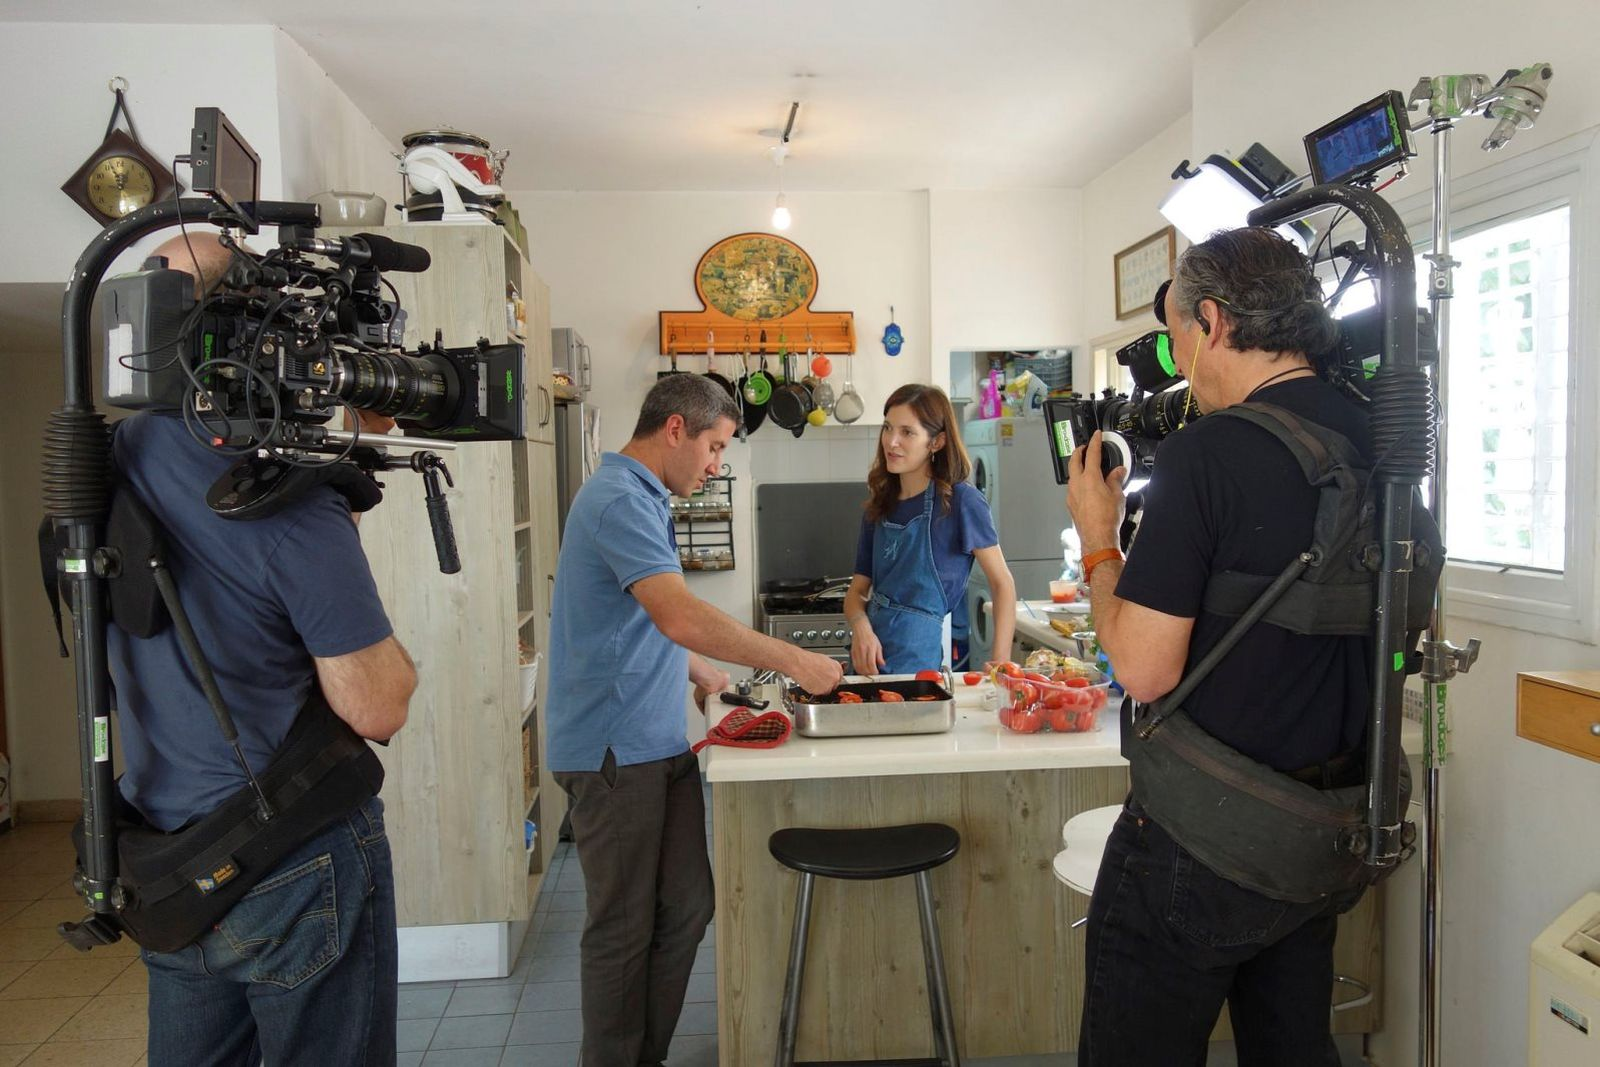 Solomonov being filmed in the kitchen of Krav Sakinim (Israel's Iron Chef) judge Ruthie Rousso. Photo courtesy of Florentine Films